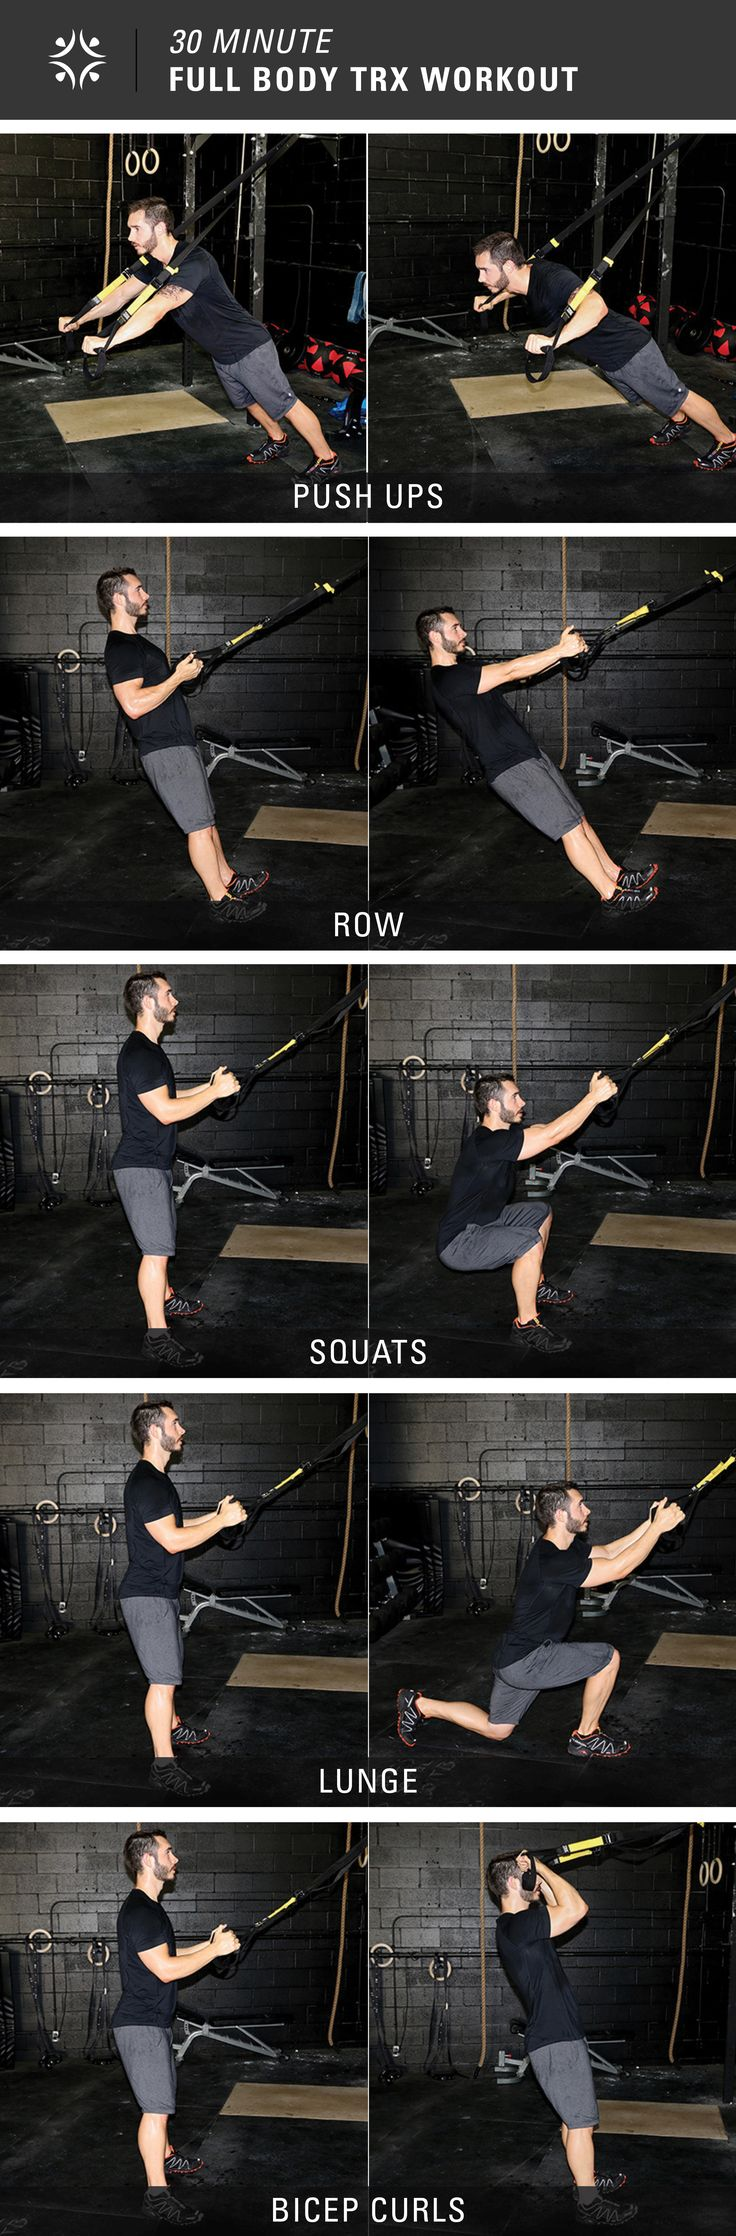 5 Exercises, 30 Minutes = Full Body Workout